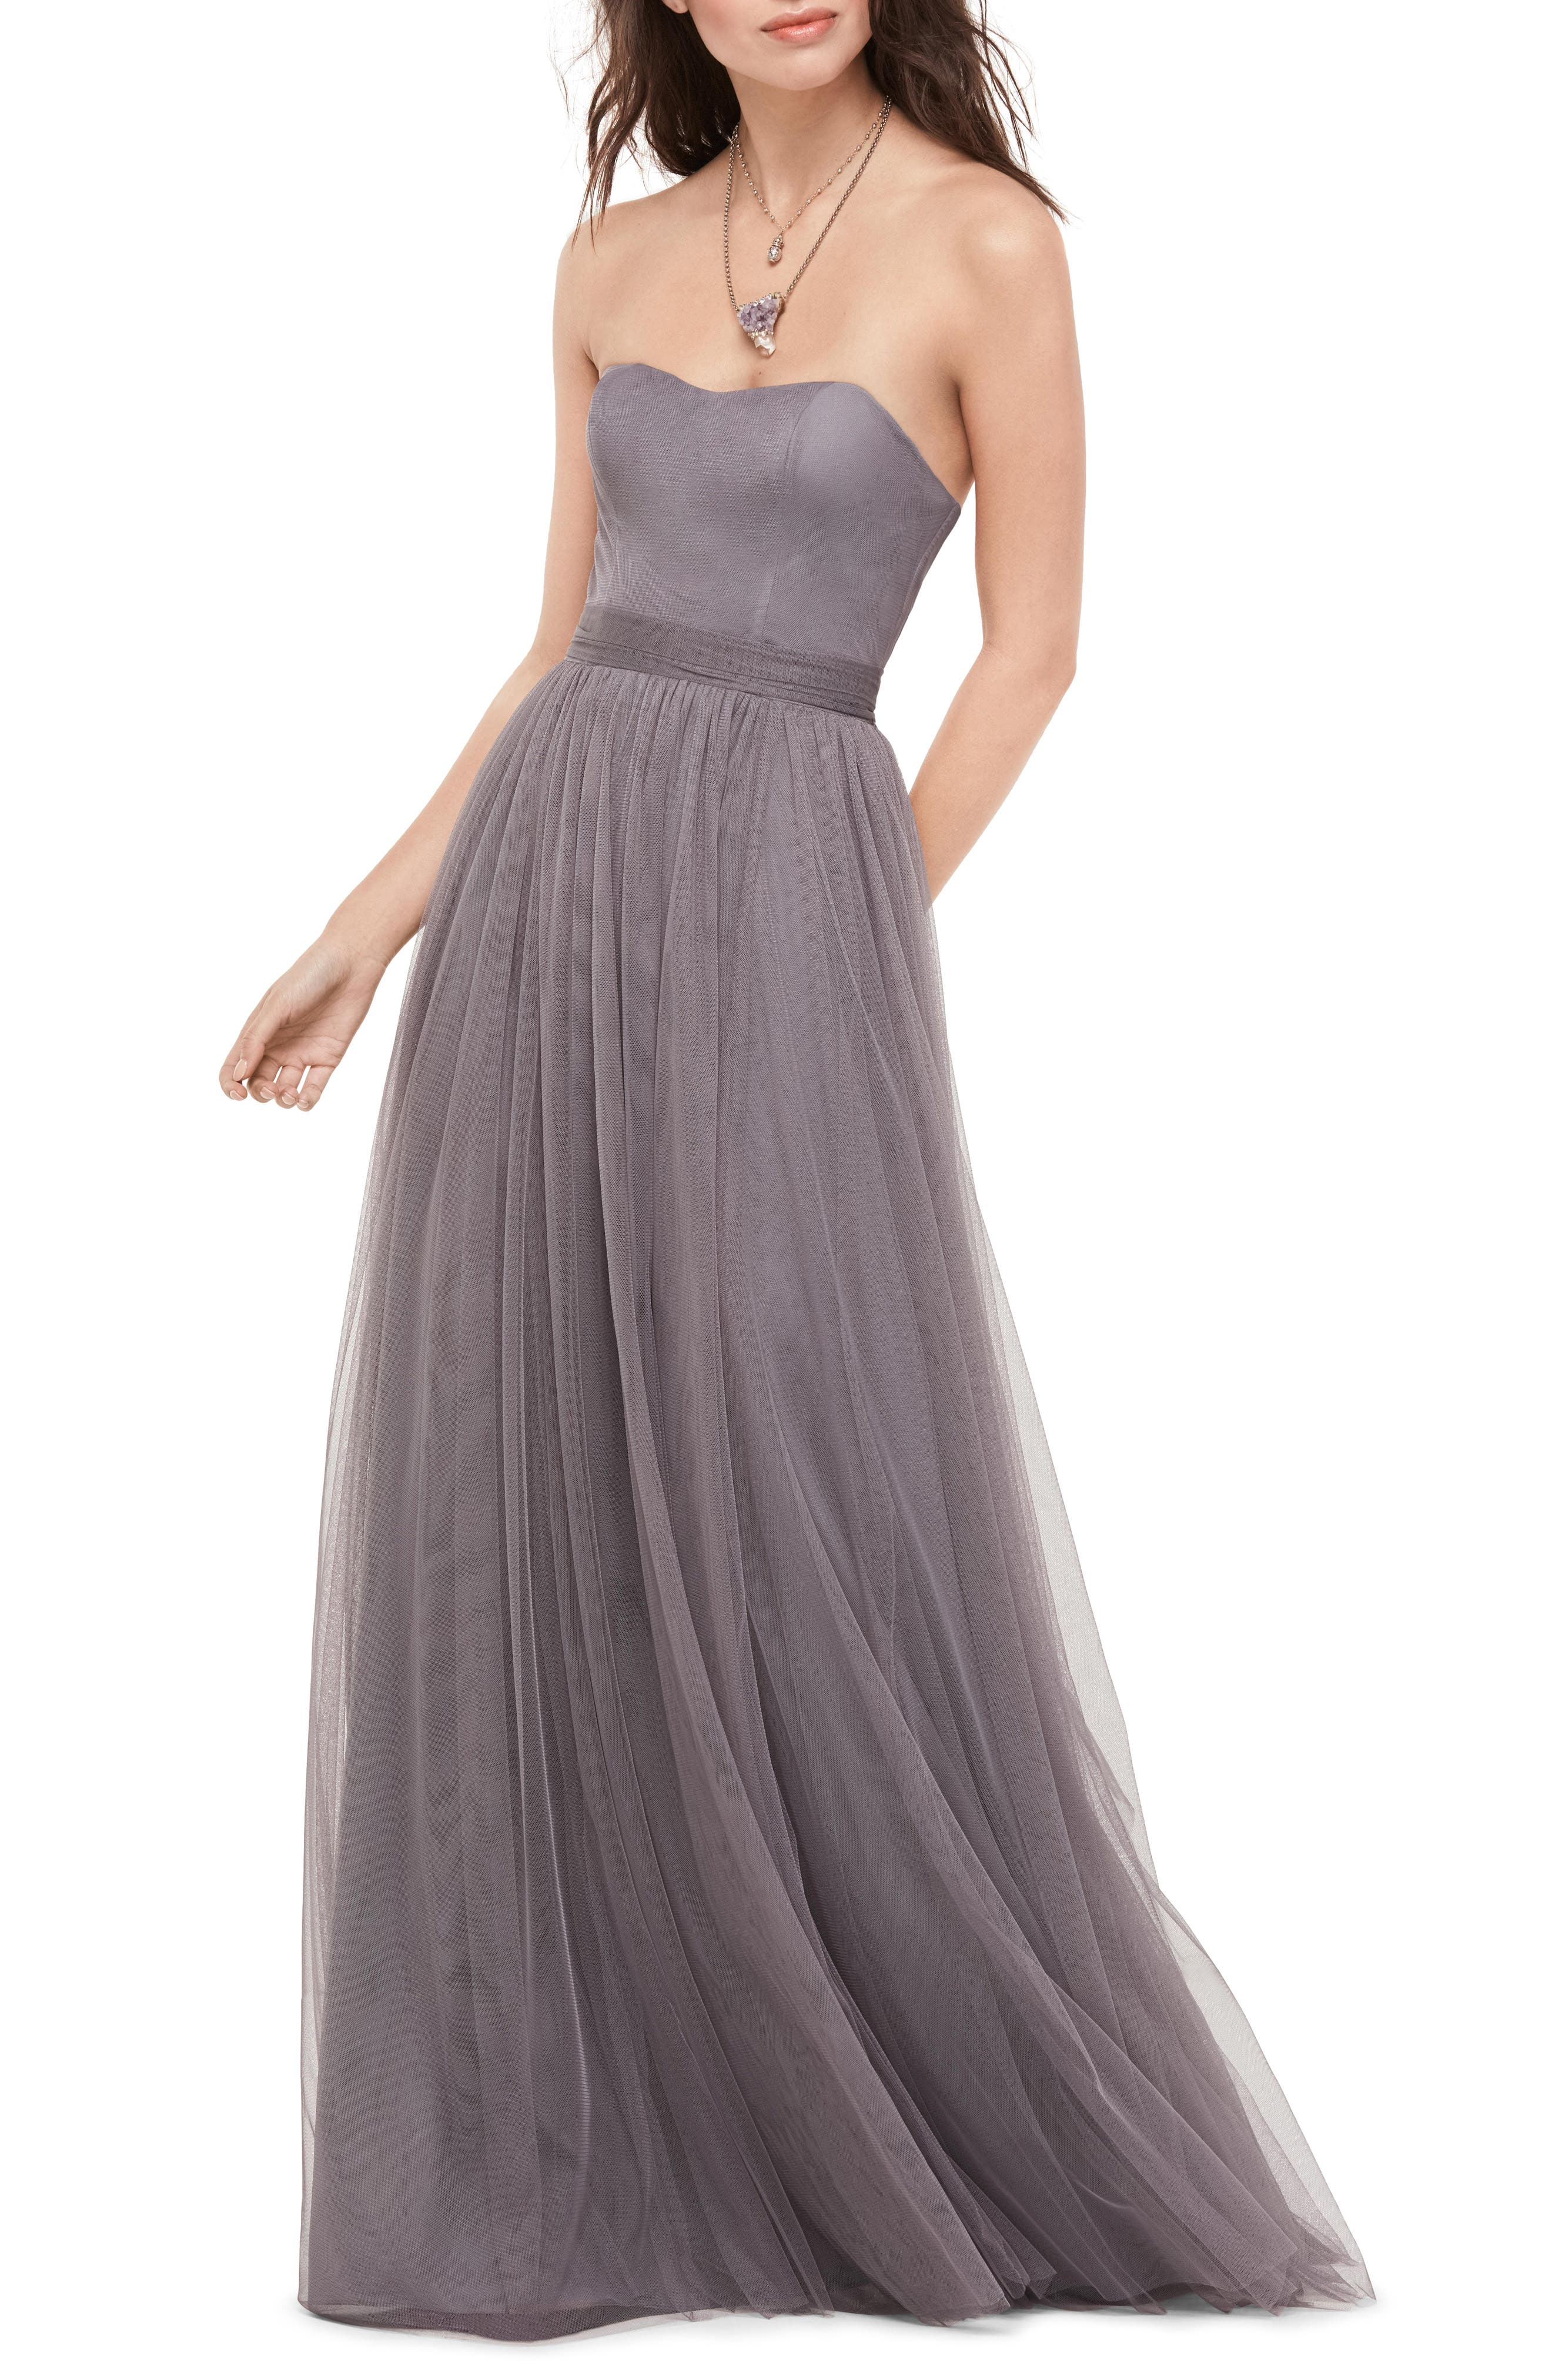 Bobbinet Strapless Gown,                         Main,                         color,